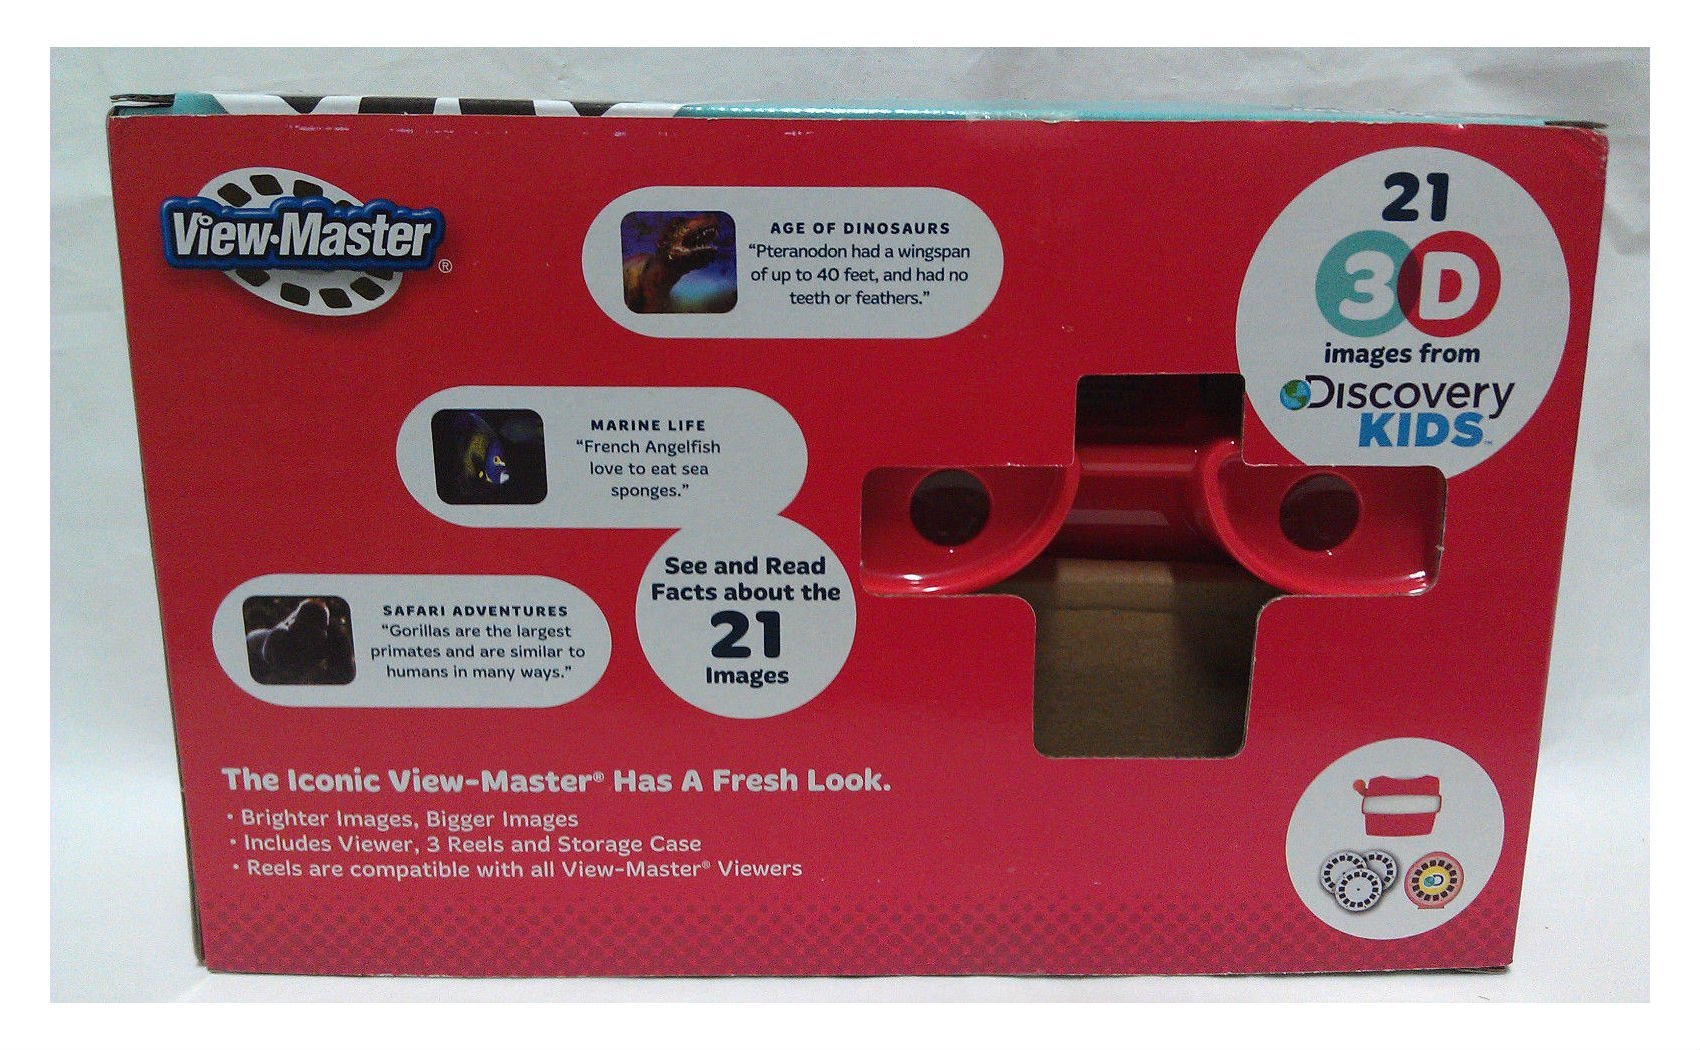 VIEW-MASTER VIEWMASTER 21 3D images DISCOVERY KIDS Dinosaurs marine safari NEW by na (Image #2)